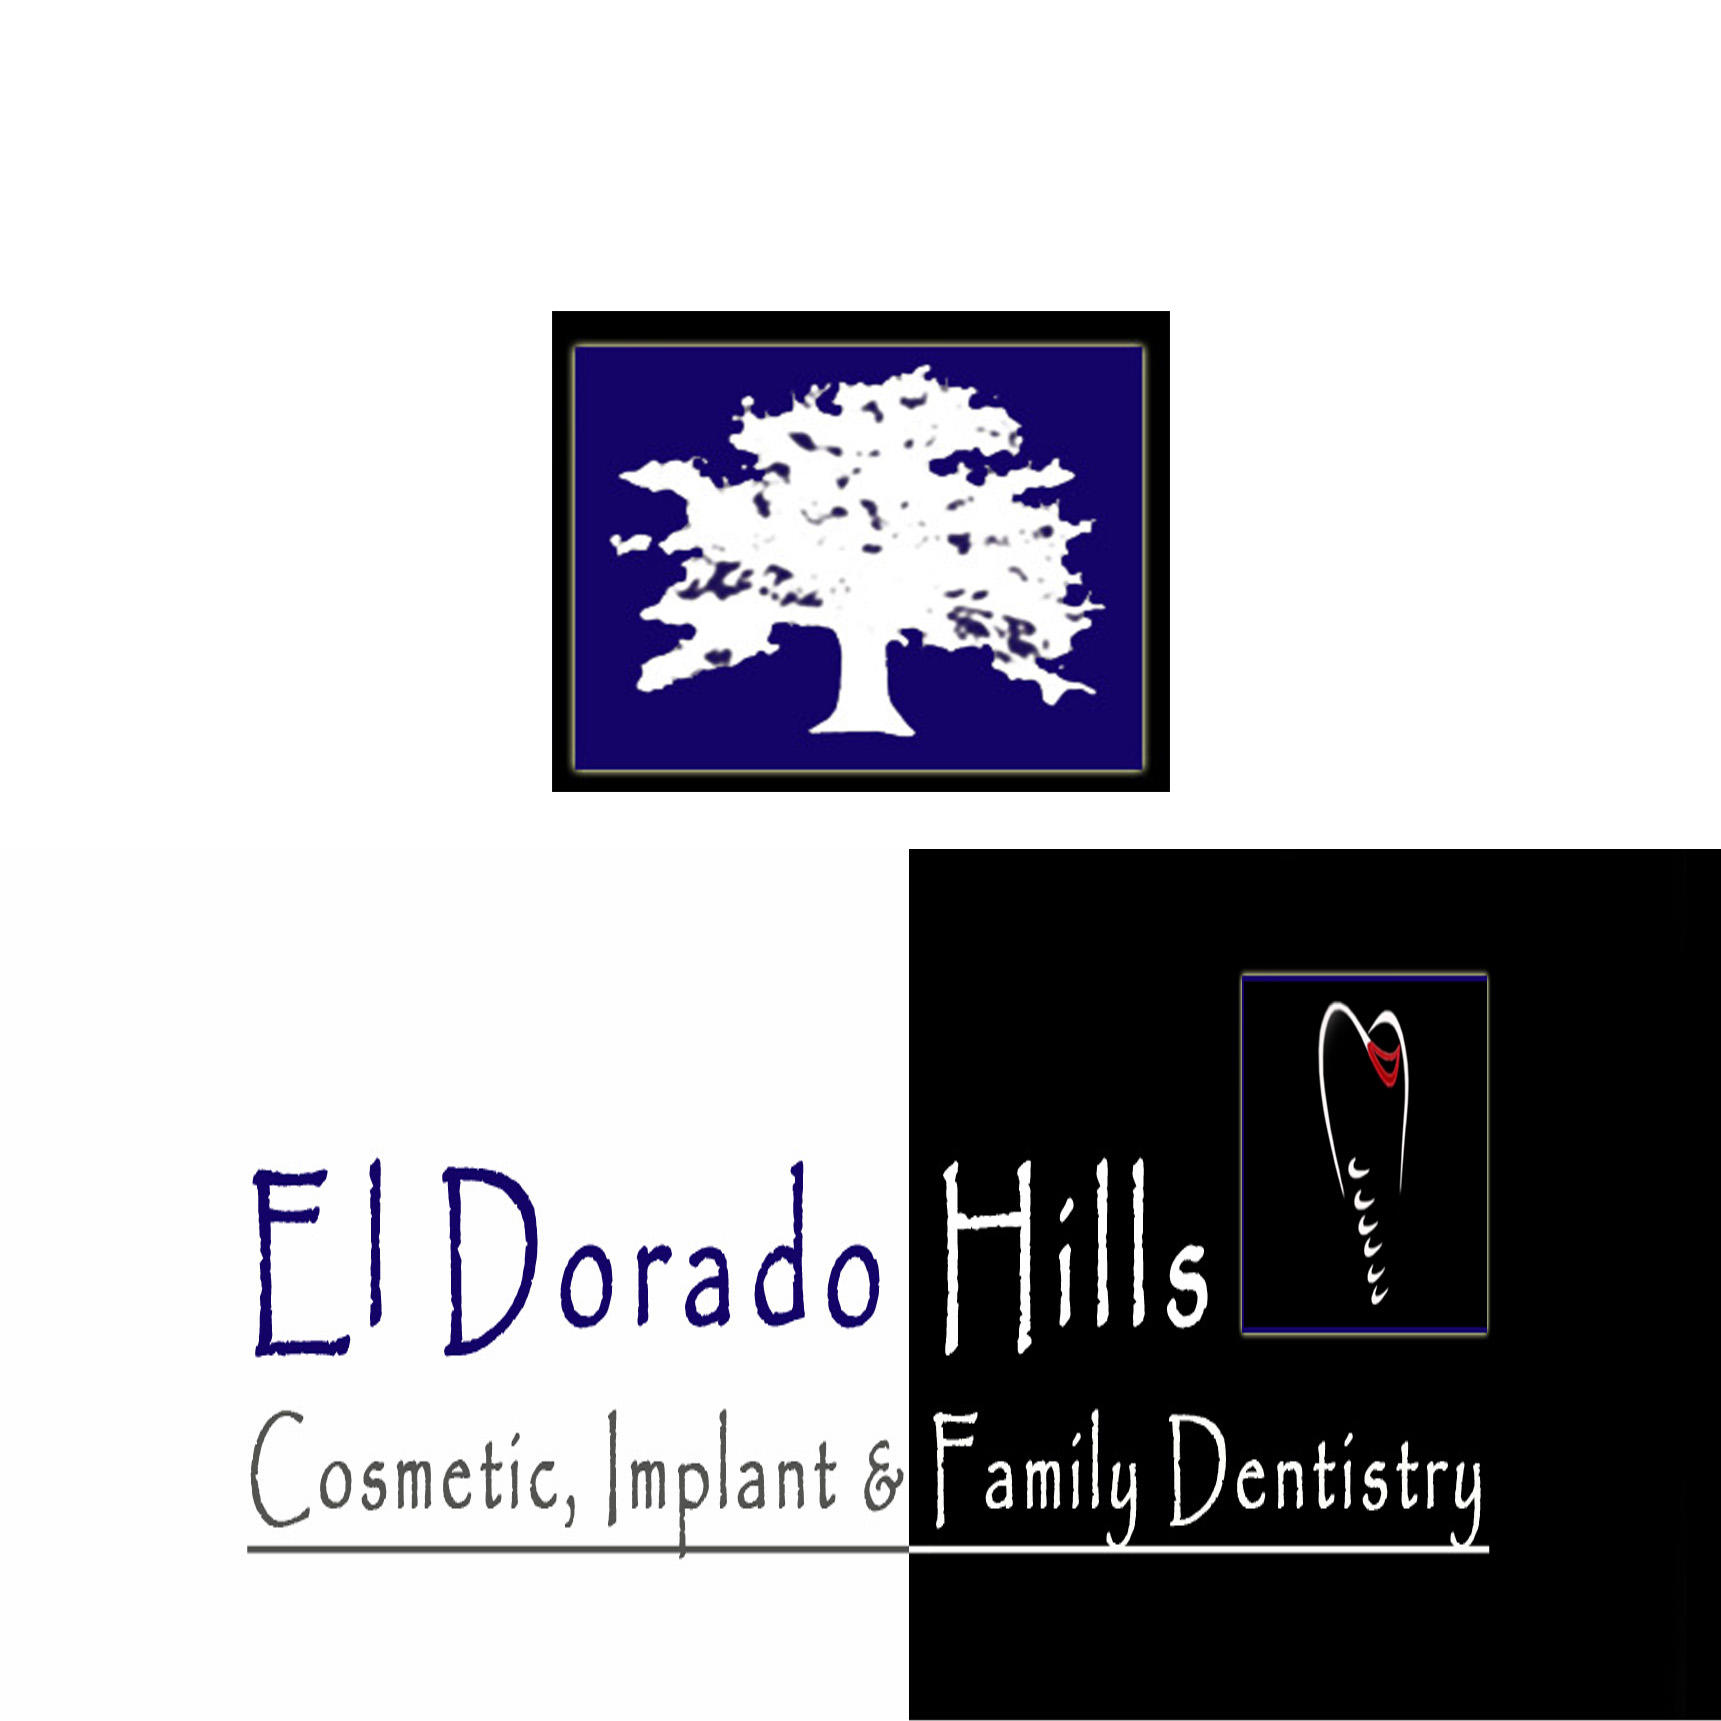 El Dorado Hills Cosmetic & Implant Dentistry